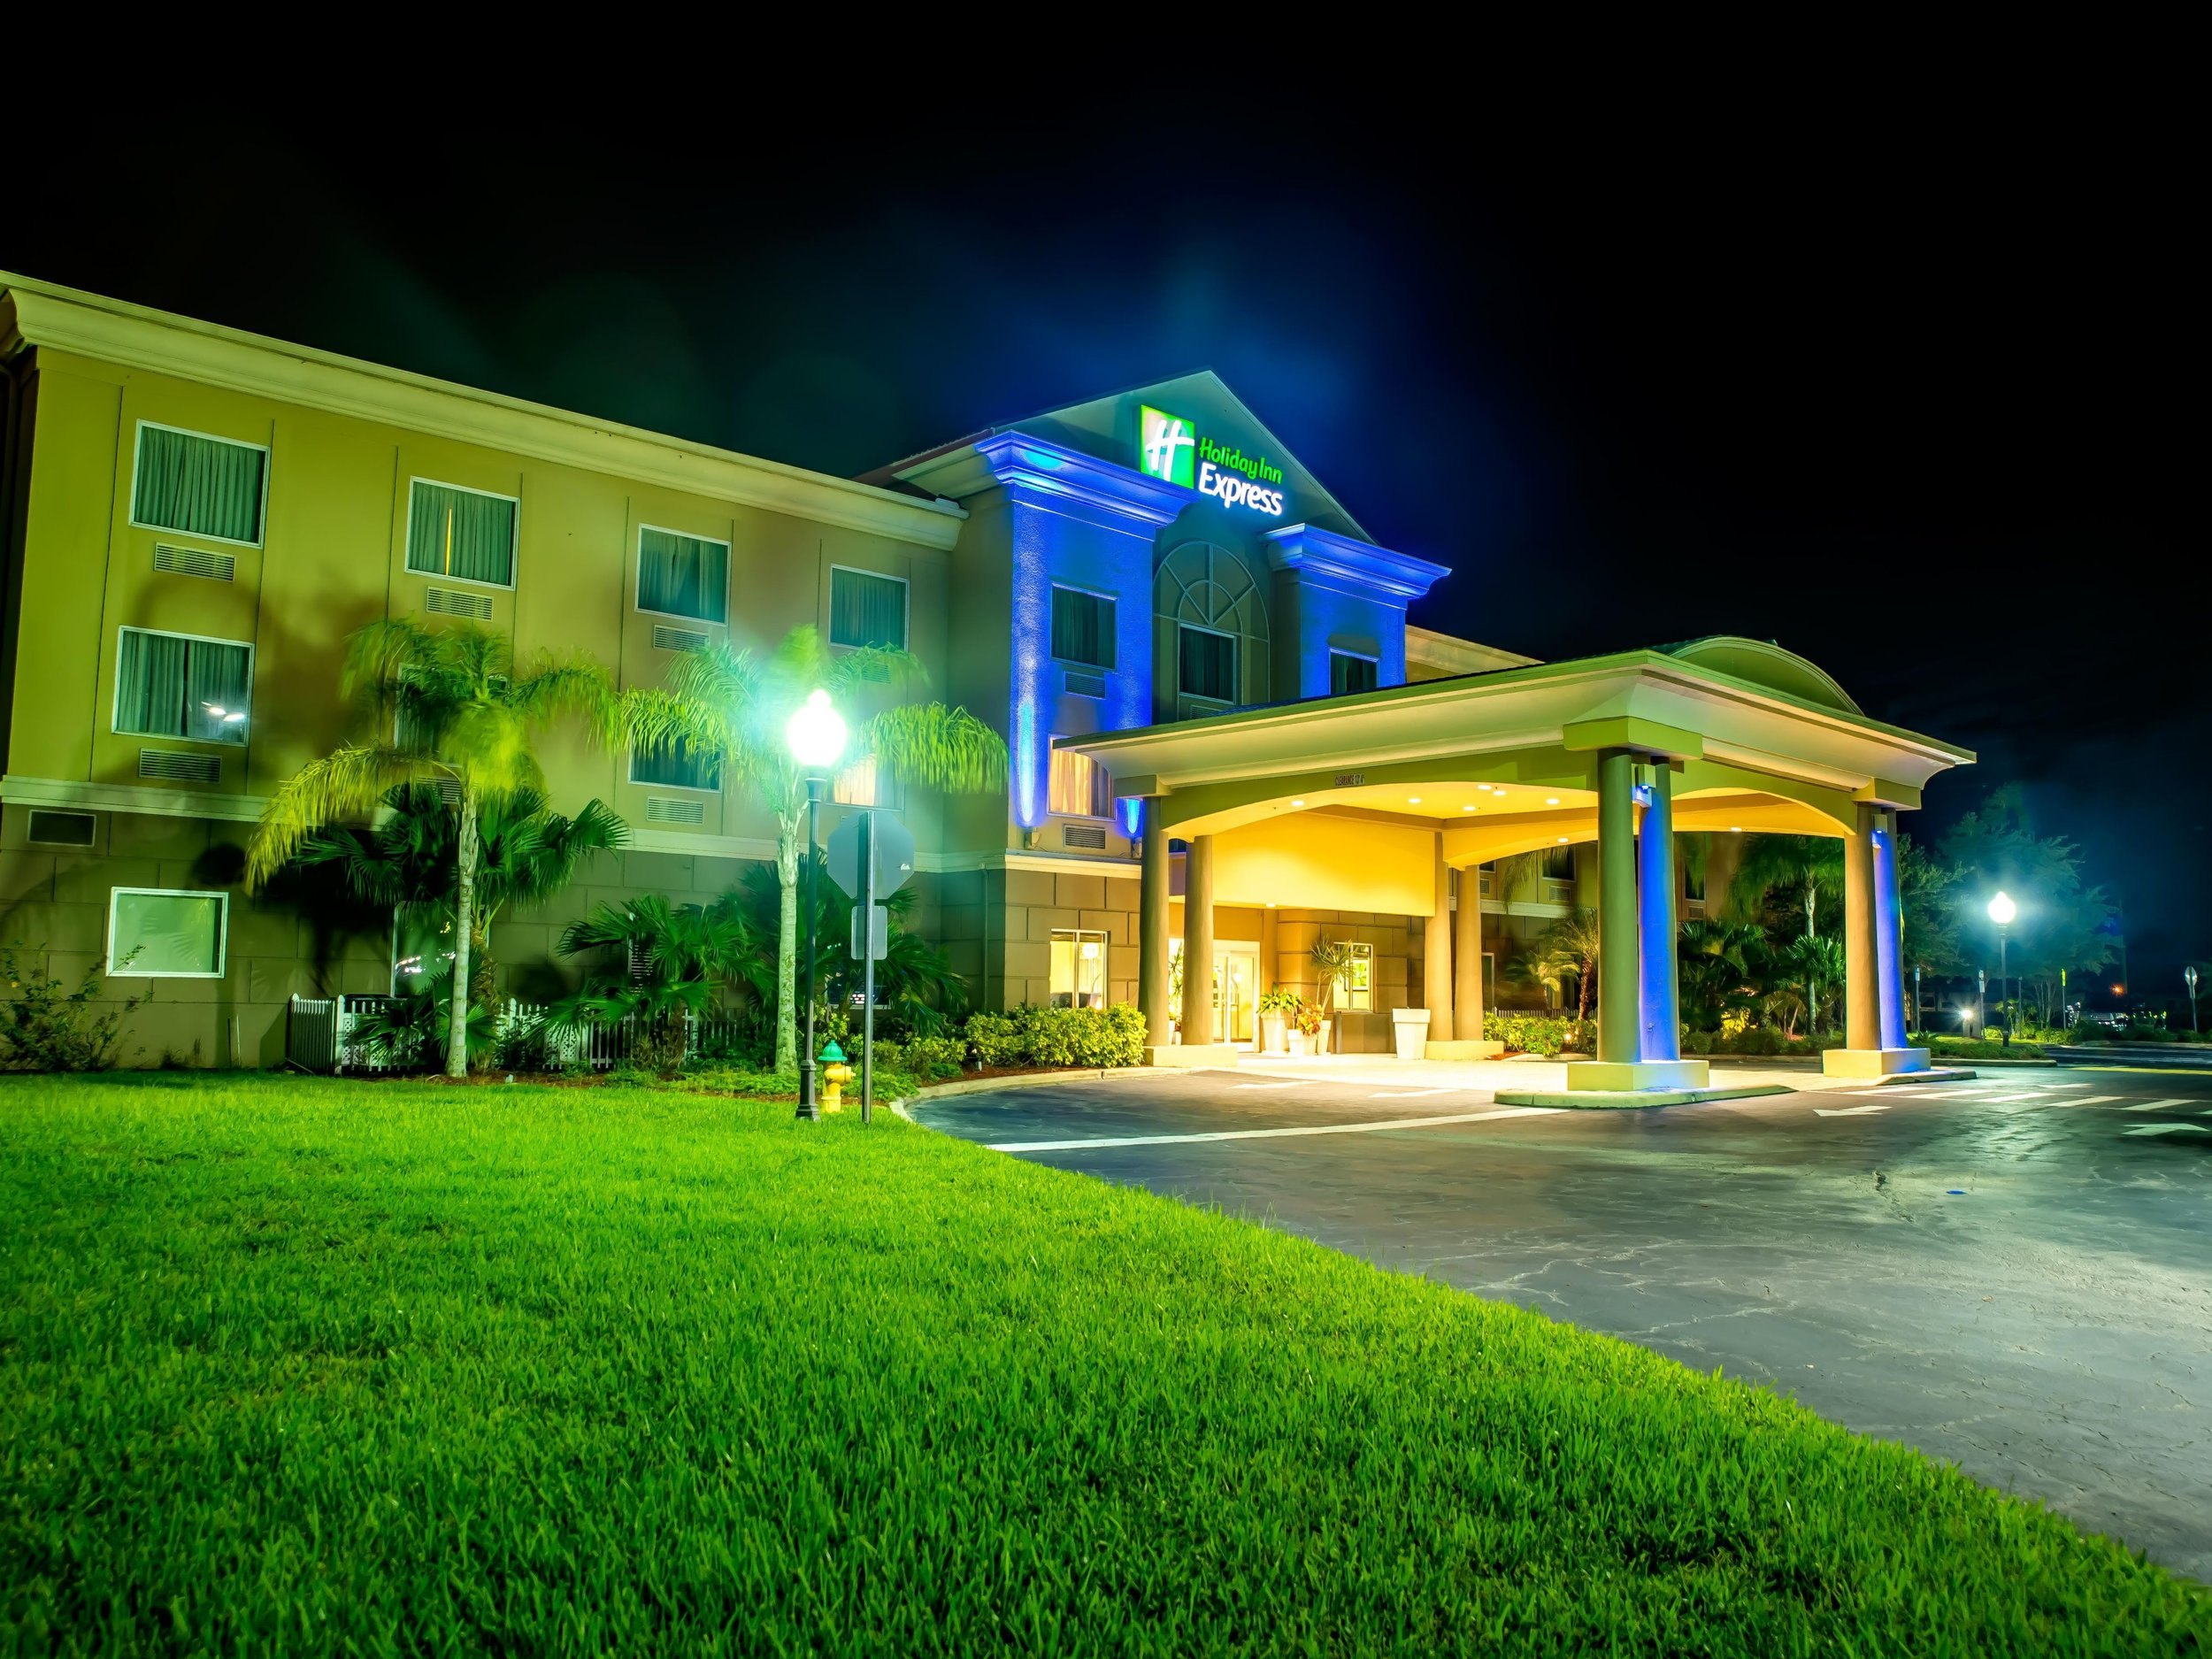 holiday-inn-express-and-suites-cocoa-4169353596-4x3.jpeg